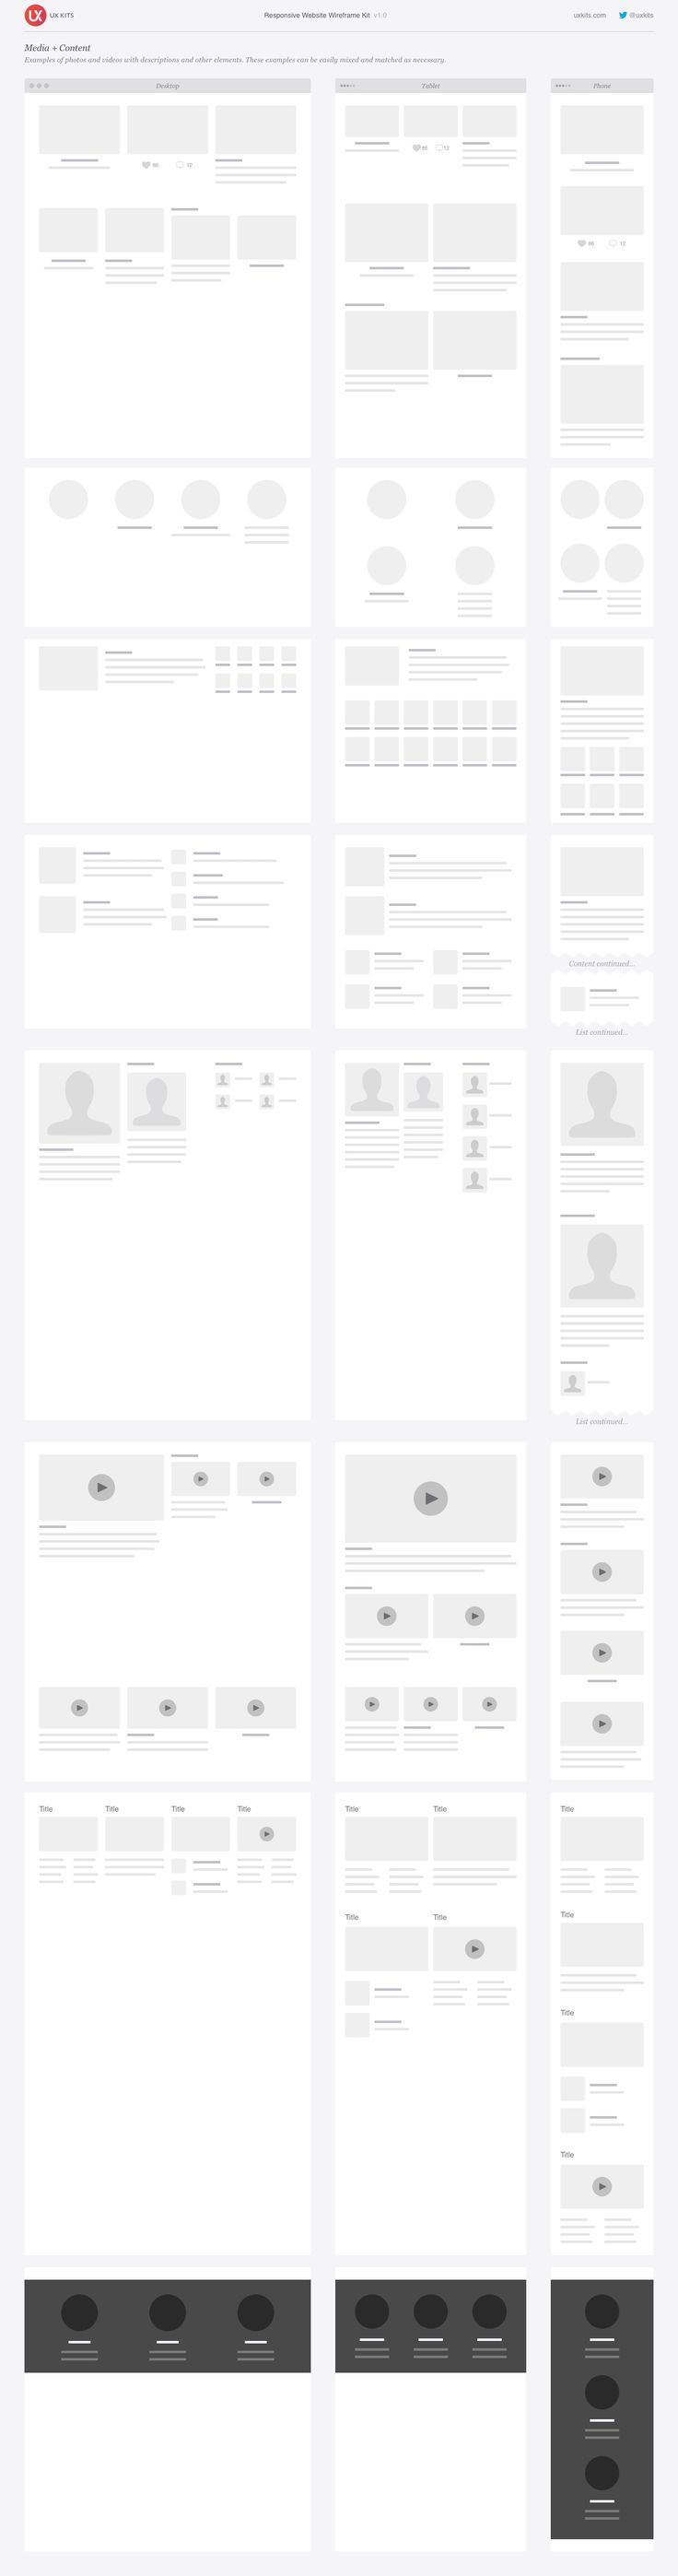 Very simple style responsive Website Wireframe Kit for Sketch, Omnigraffle, and Illustrator – UX Kits. If you like UX, design, or design thinking, check out theuxblog.com